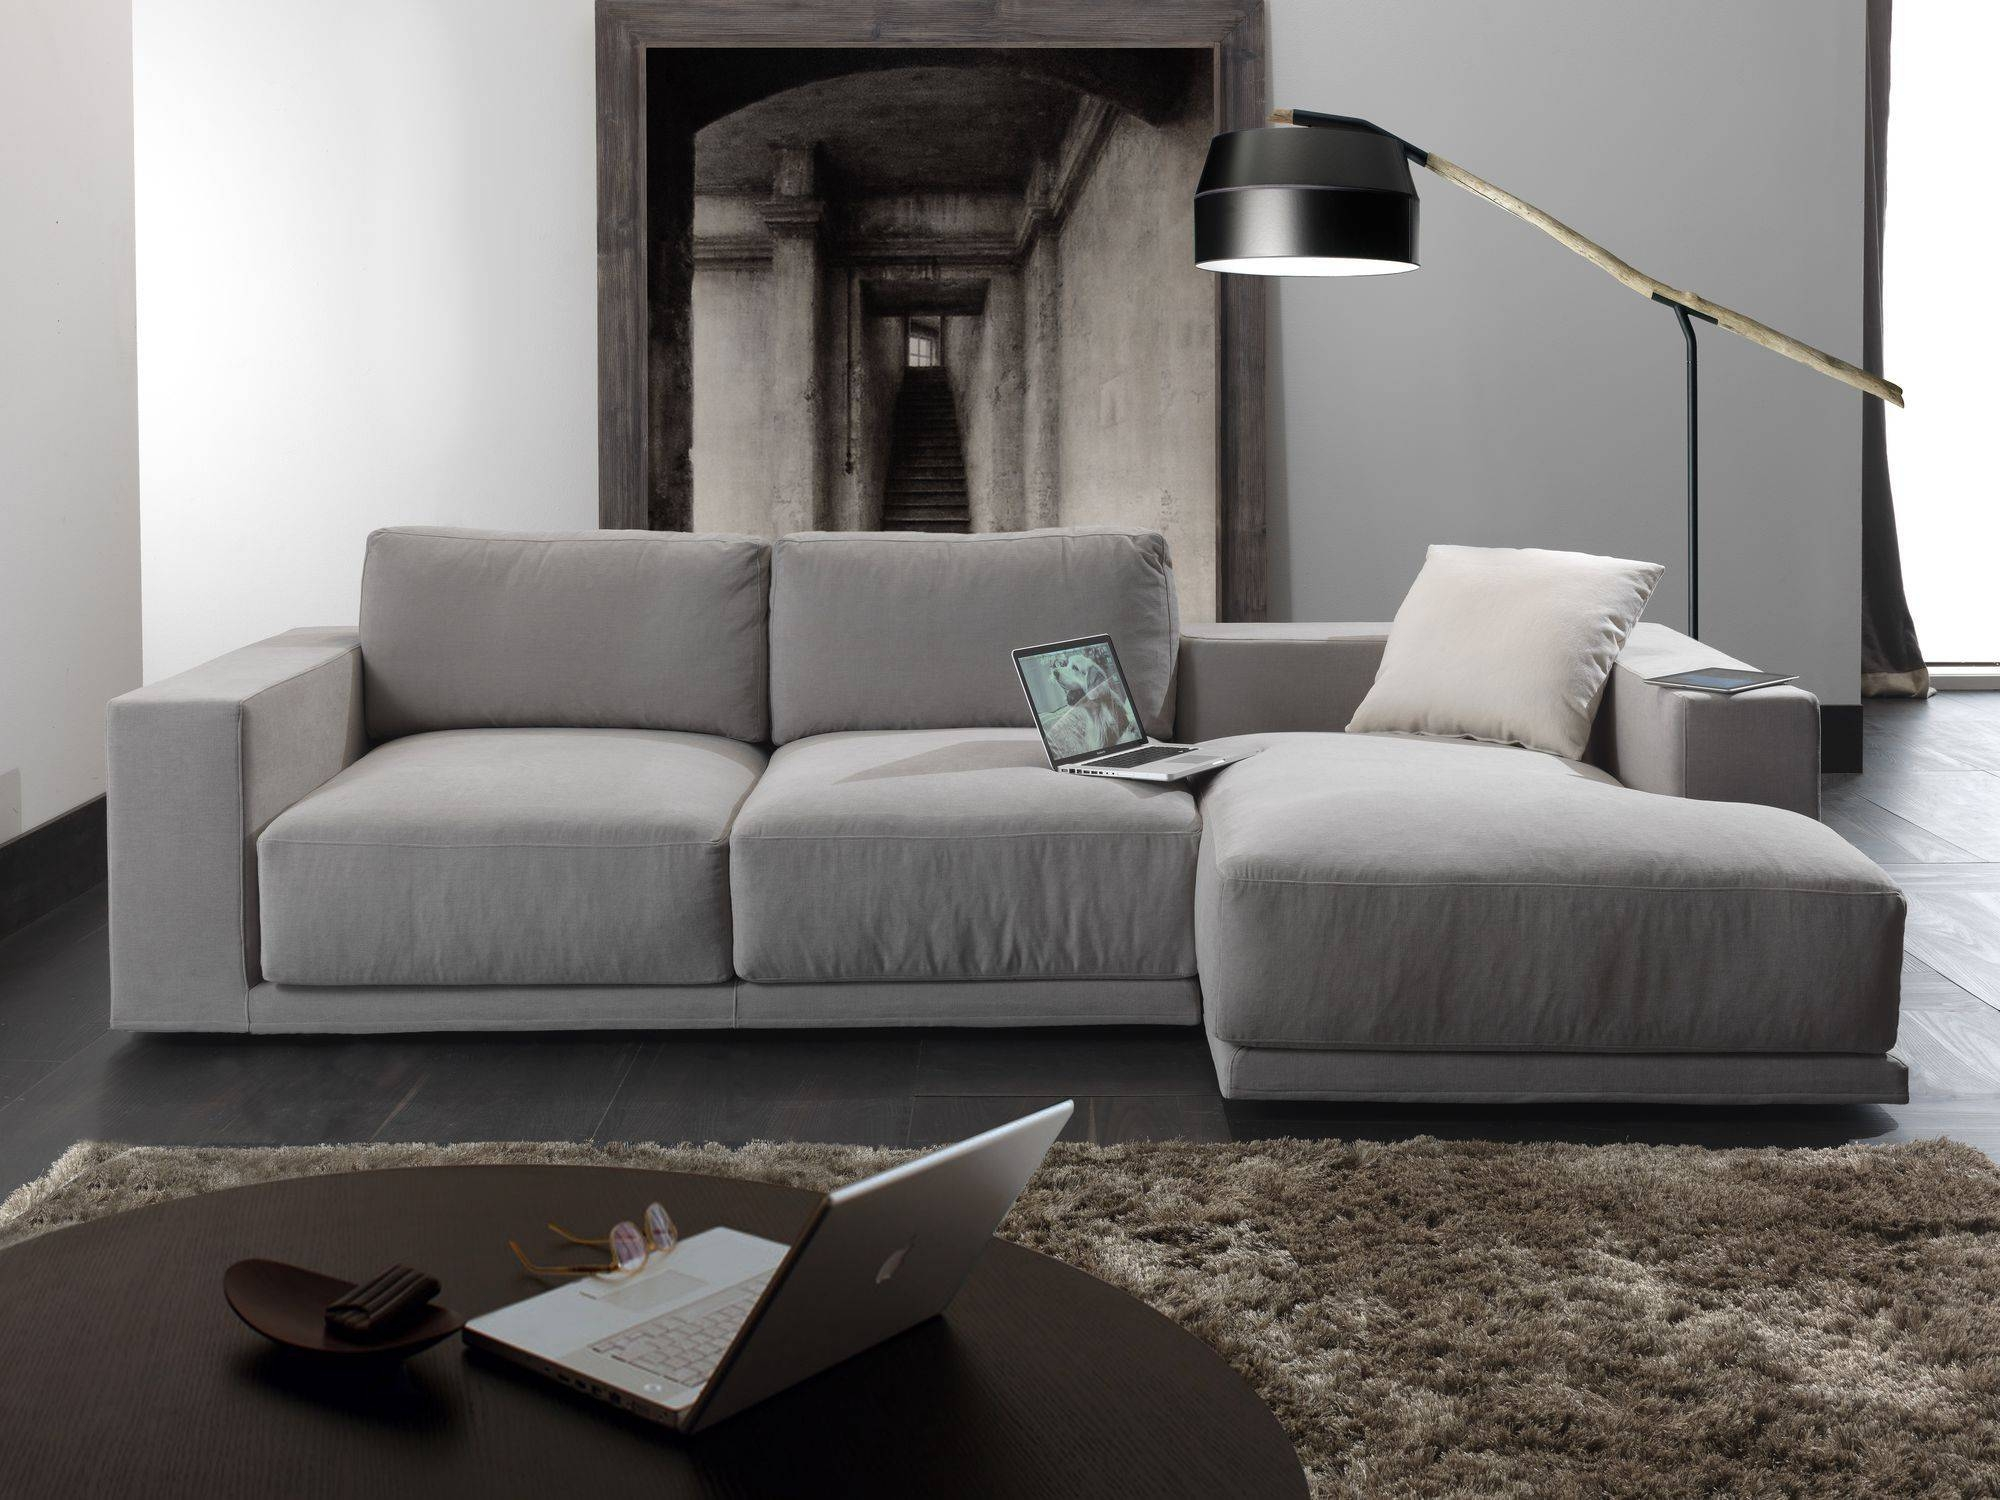 Modular Sofa / Contemporary / Fabric / 3-Seater - Relax Square inside Contemporary Fabric Sofas (Image 18 of 30)